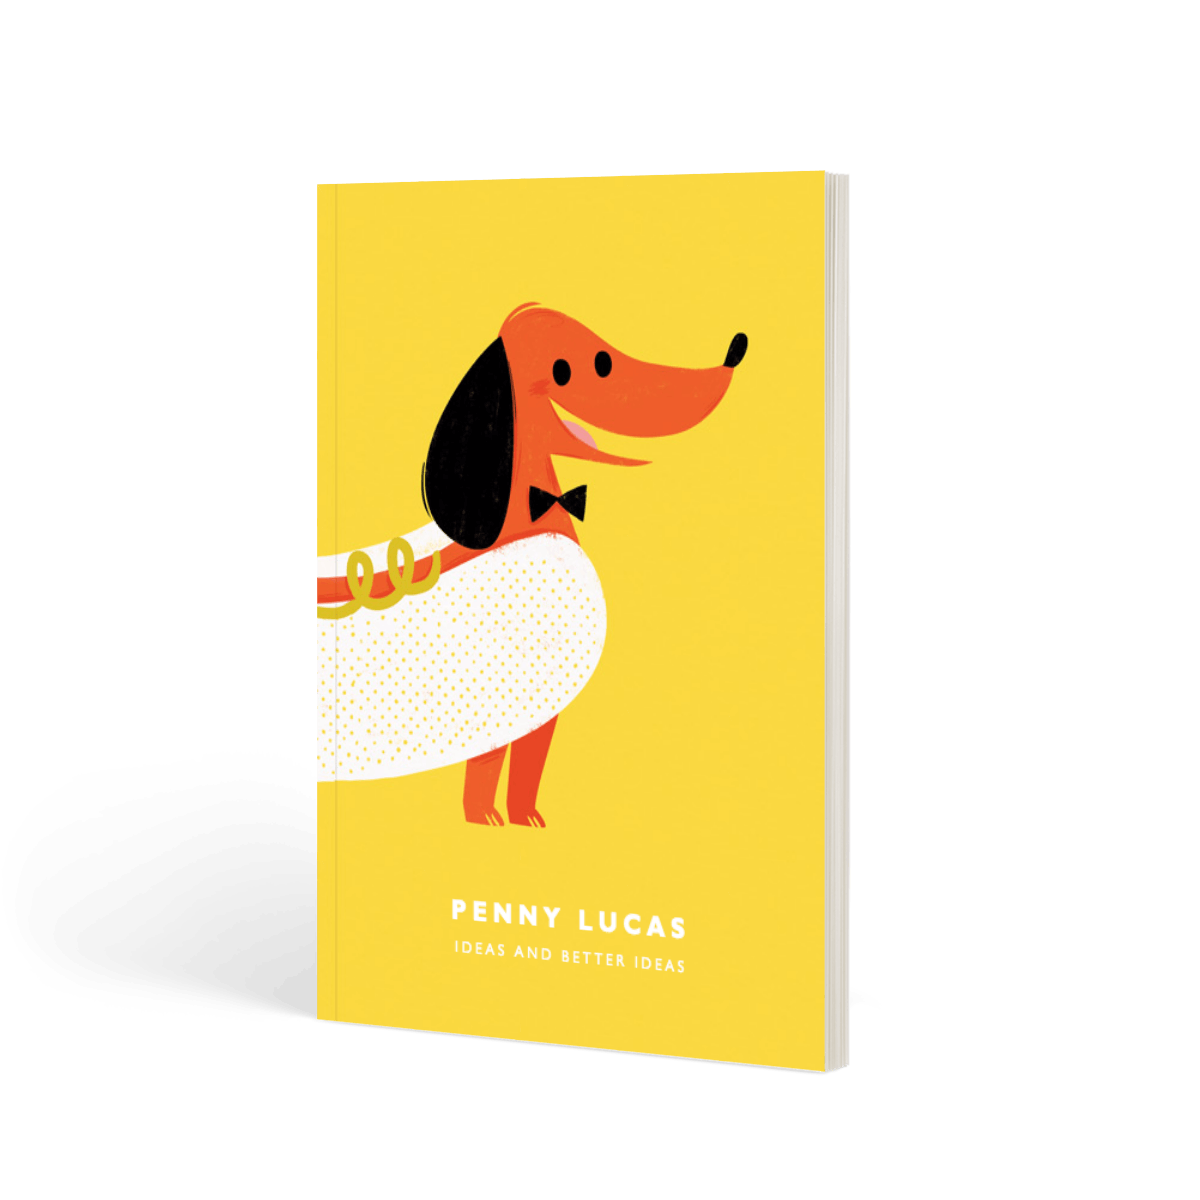 Https%3a%2f%2fwww.papier.com%2fproduct image%2f6376%2f6%2fhappy hot dog 1625 front 1461319523.png?ixlib=rb 1.1